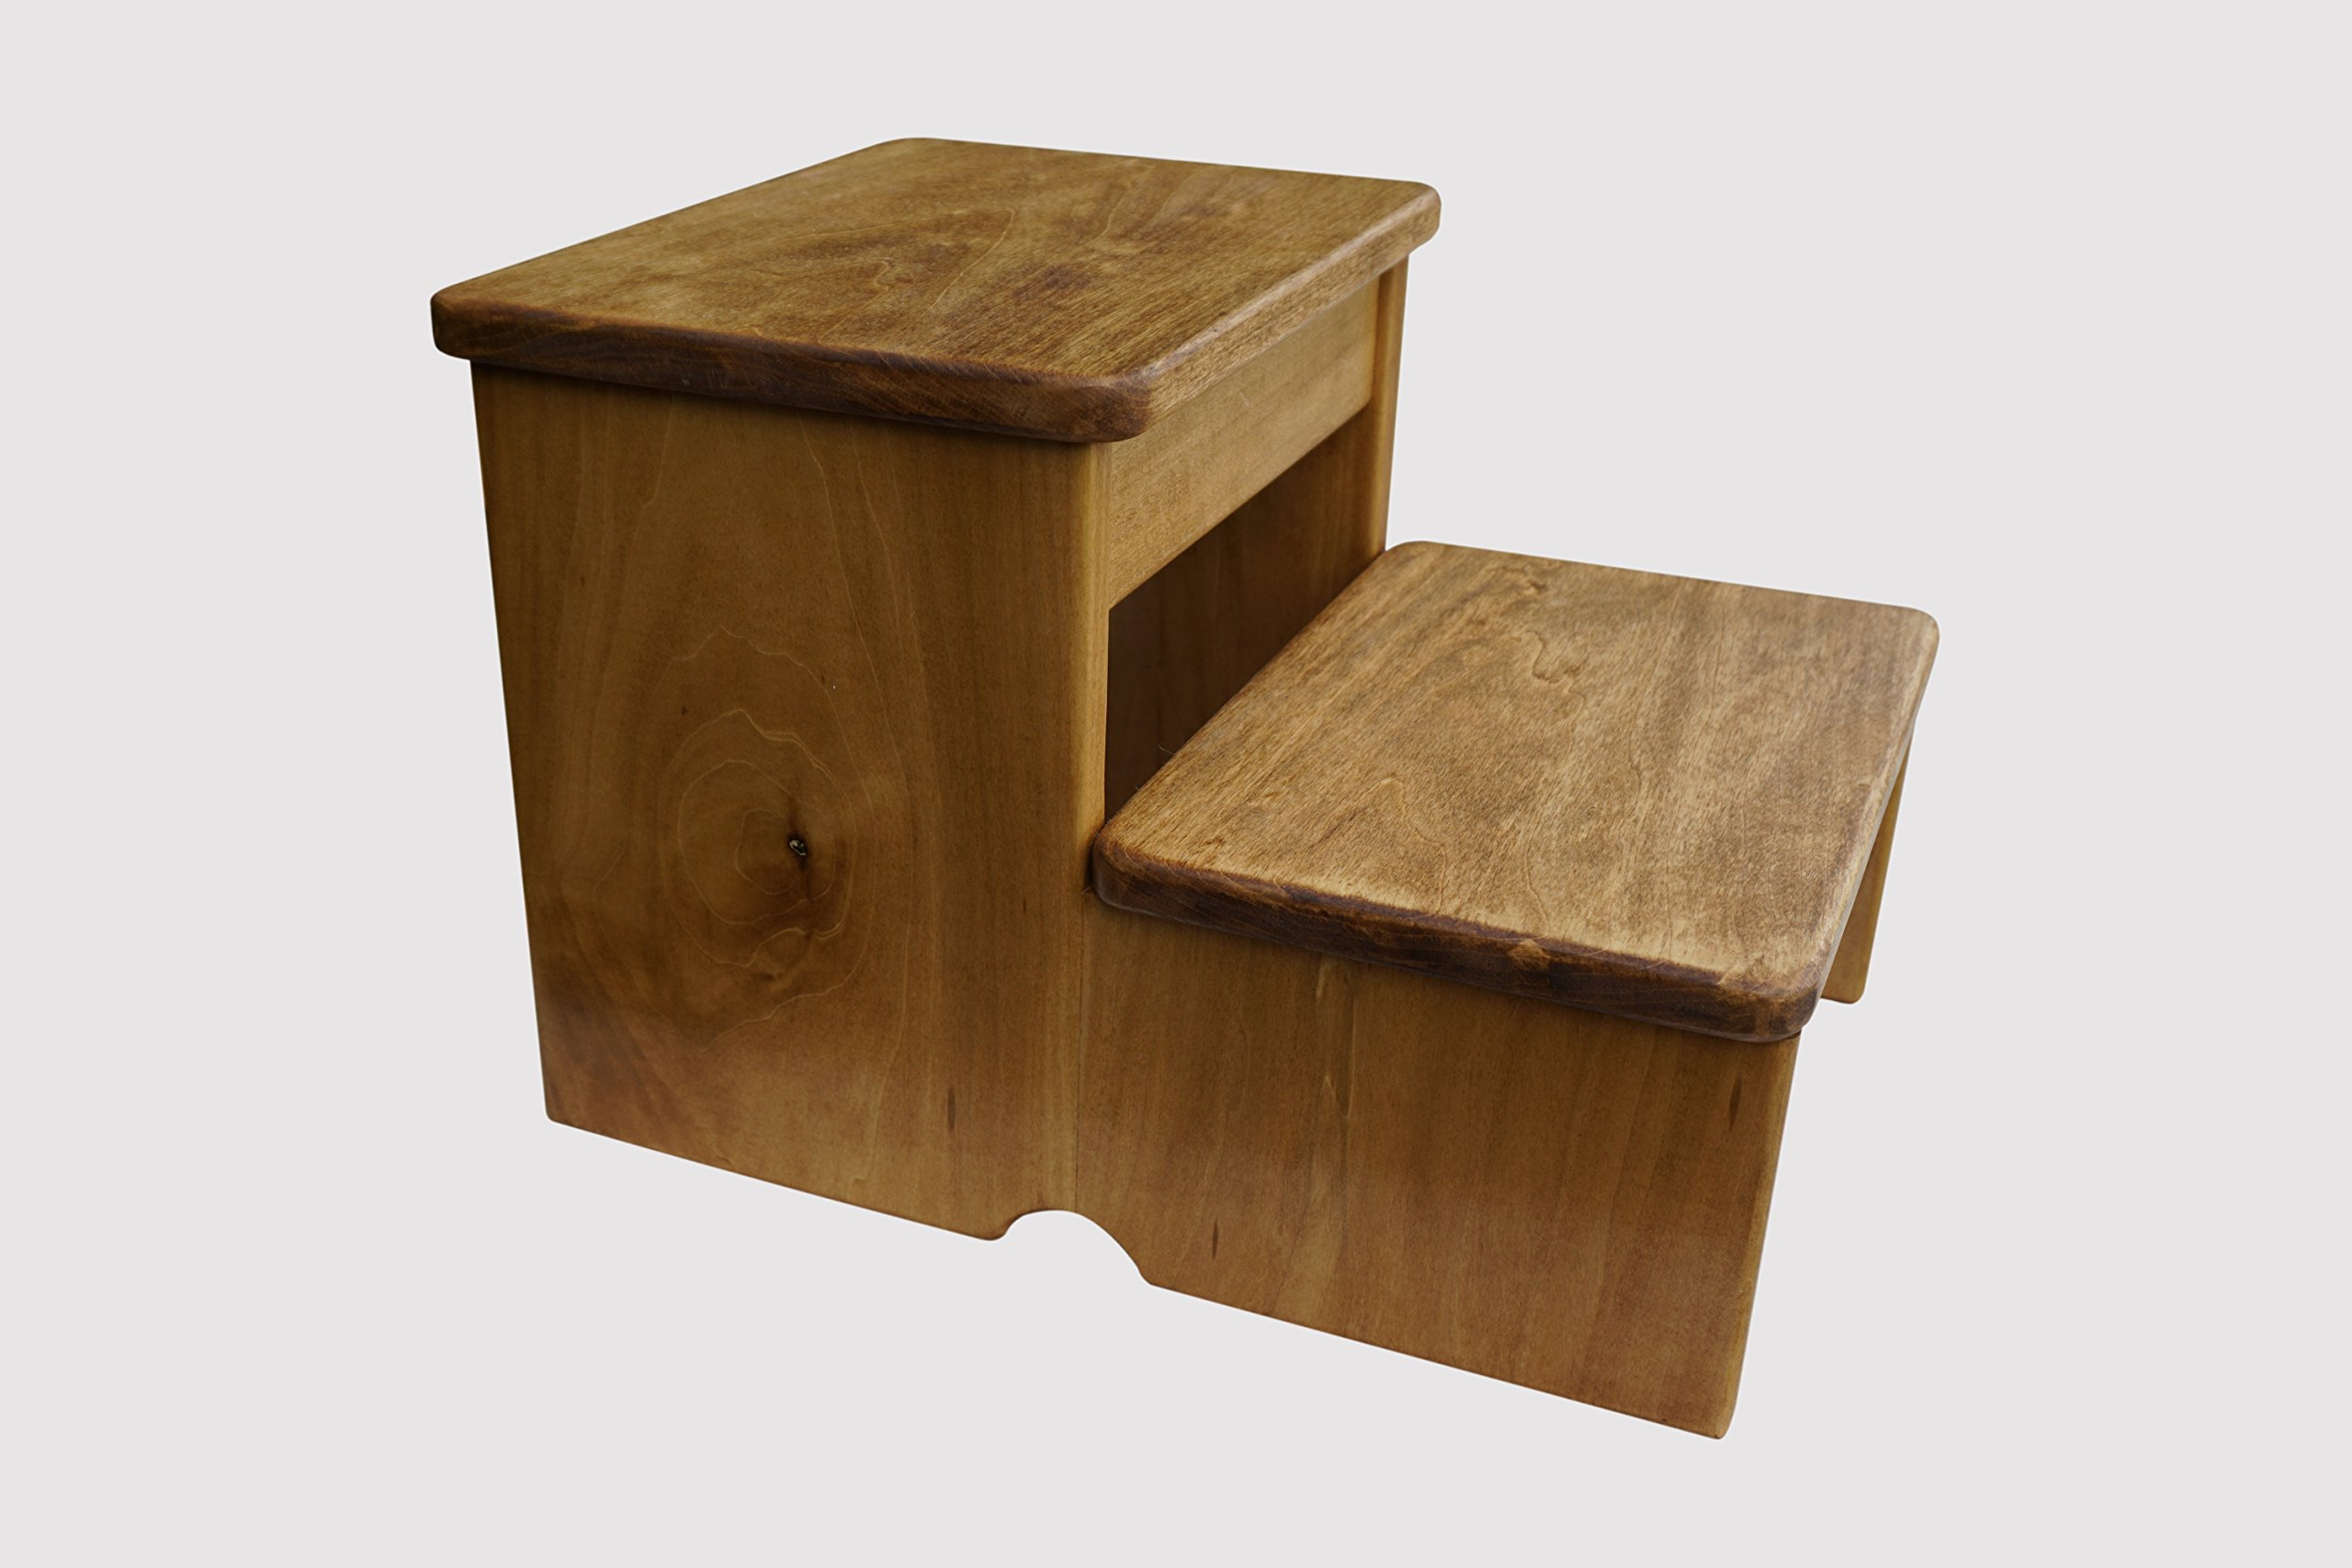 Standard 2-Step Stool (Made in the USA) (Maple Stain) by KR Ideas